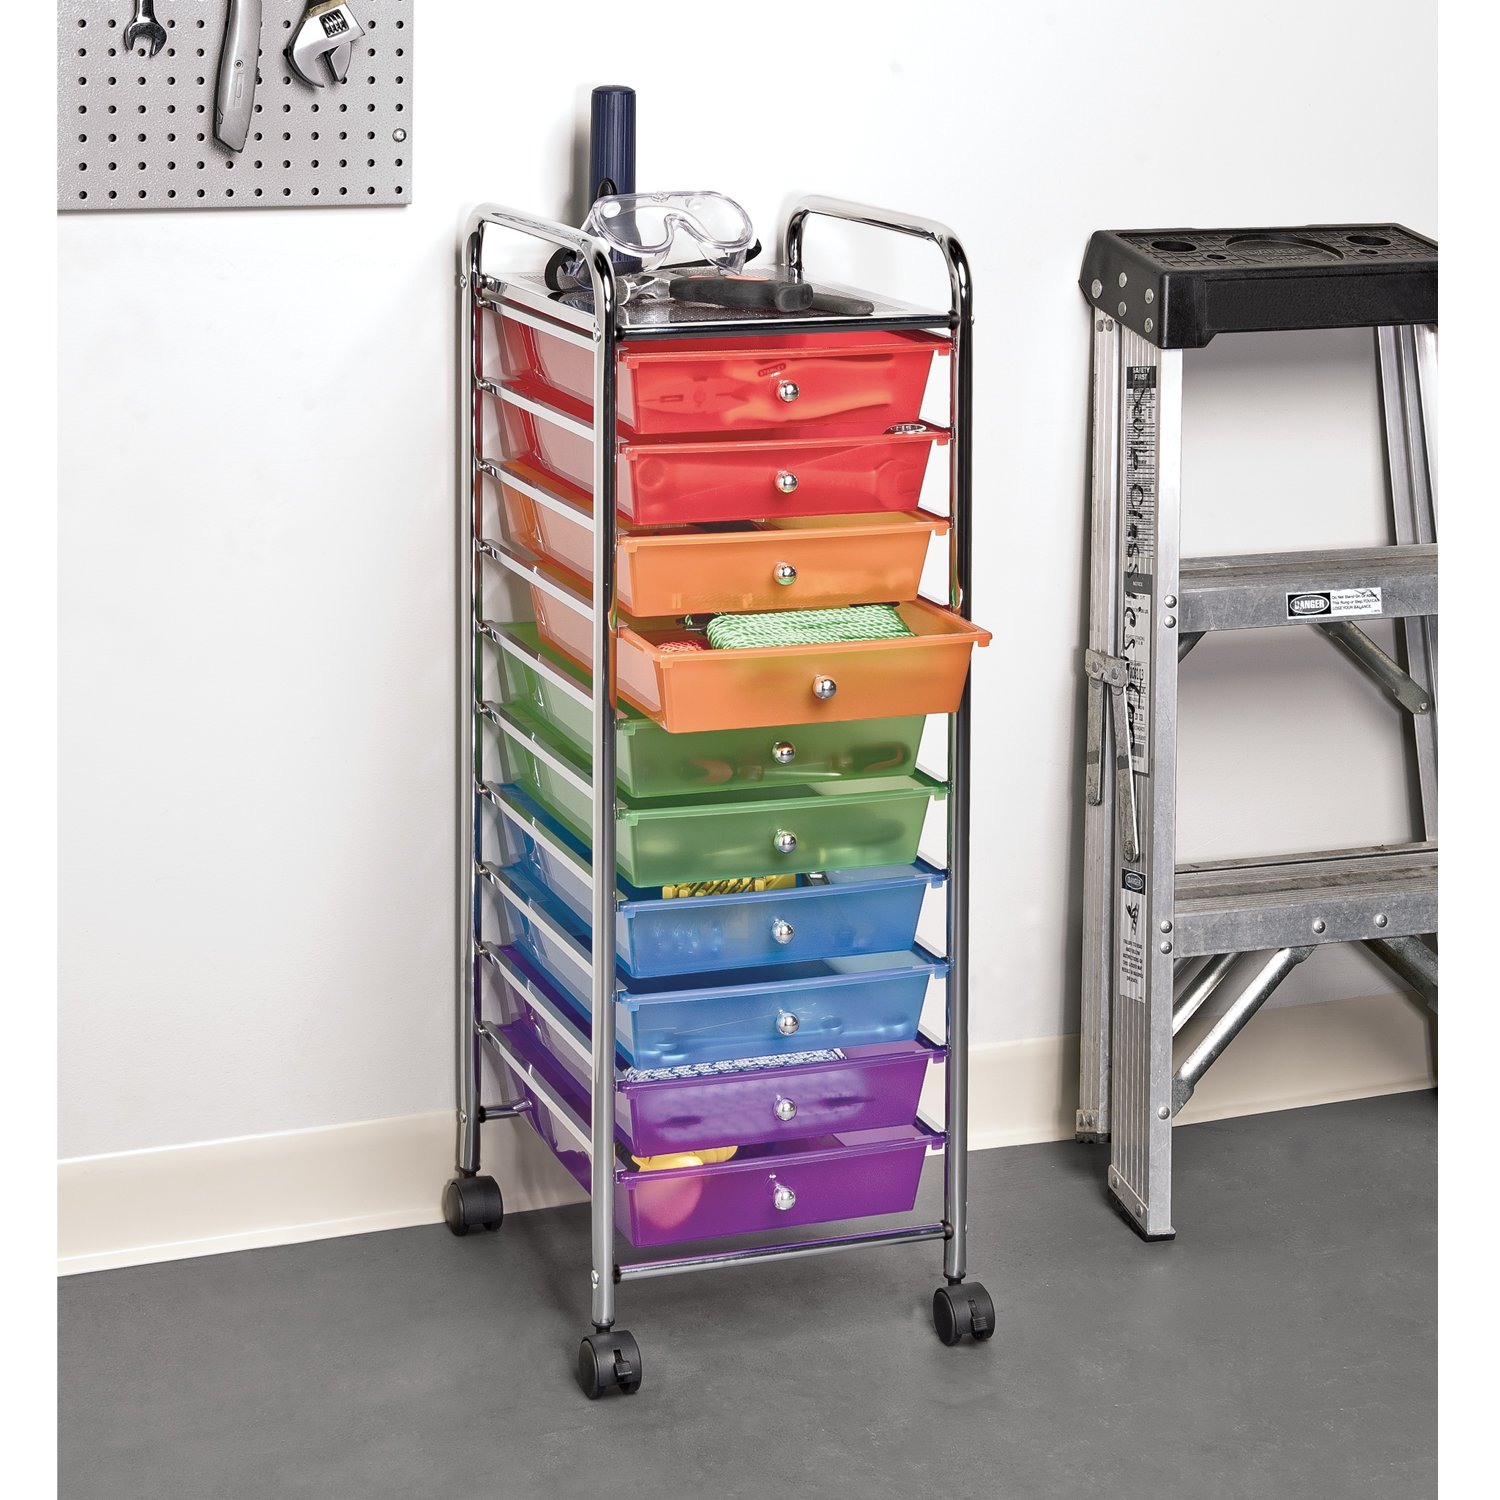 office rolling cart. Seville Classics 10-Drawer Organizer Cart, Multi Color: Amazon.ca: Home \u0026 Kitchen Office Rolling Cart F